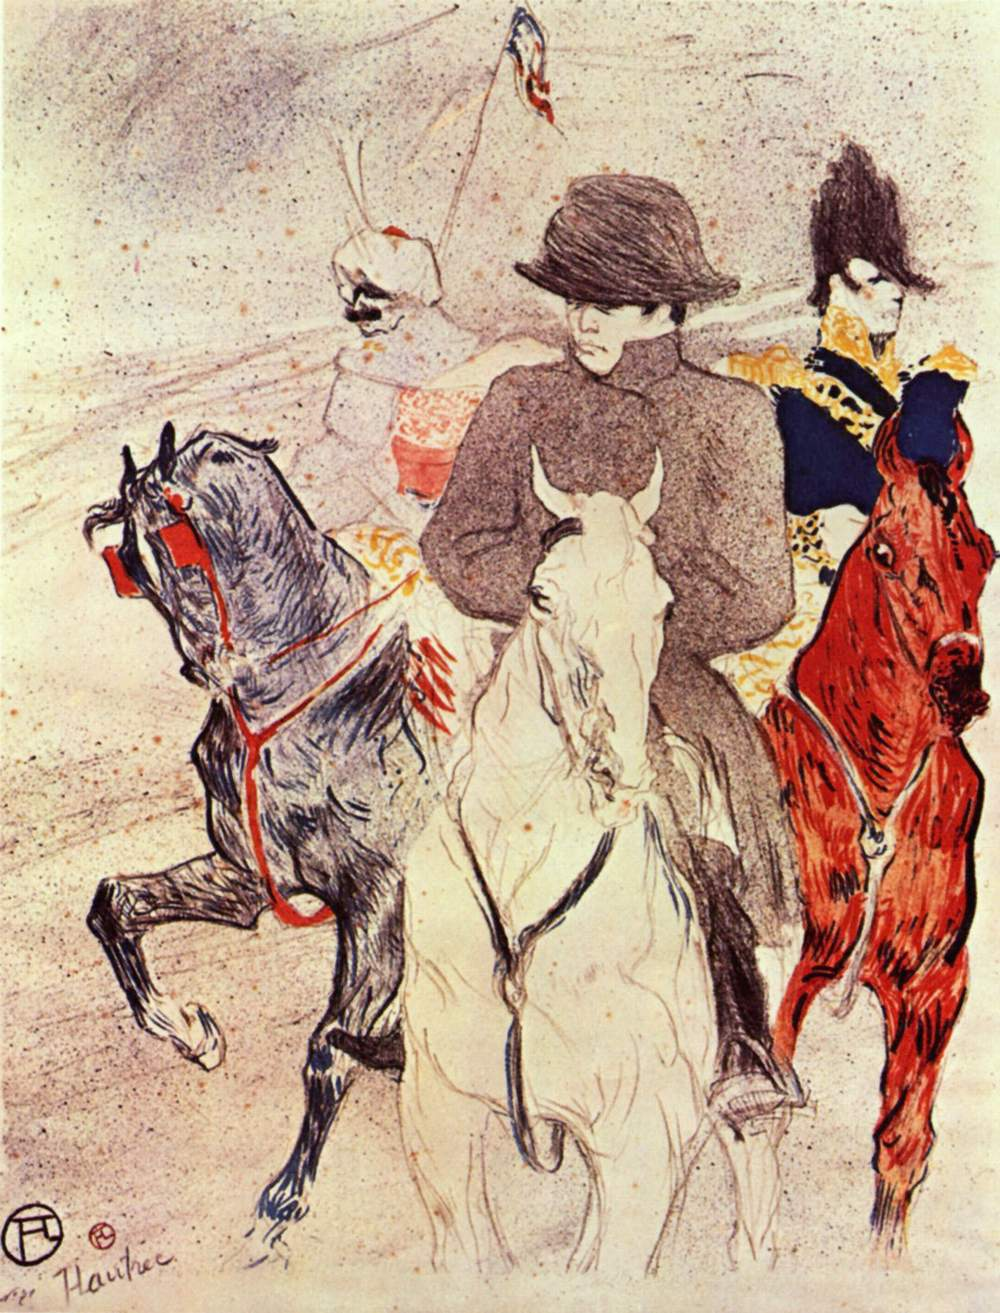 https://uploads0.wikipaintings.org/images/henri-de-toulouse-lautrec/napol%C3%A9on-1896.jpg